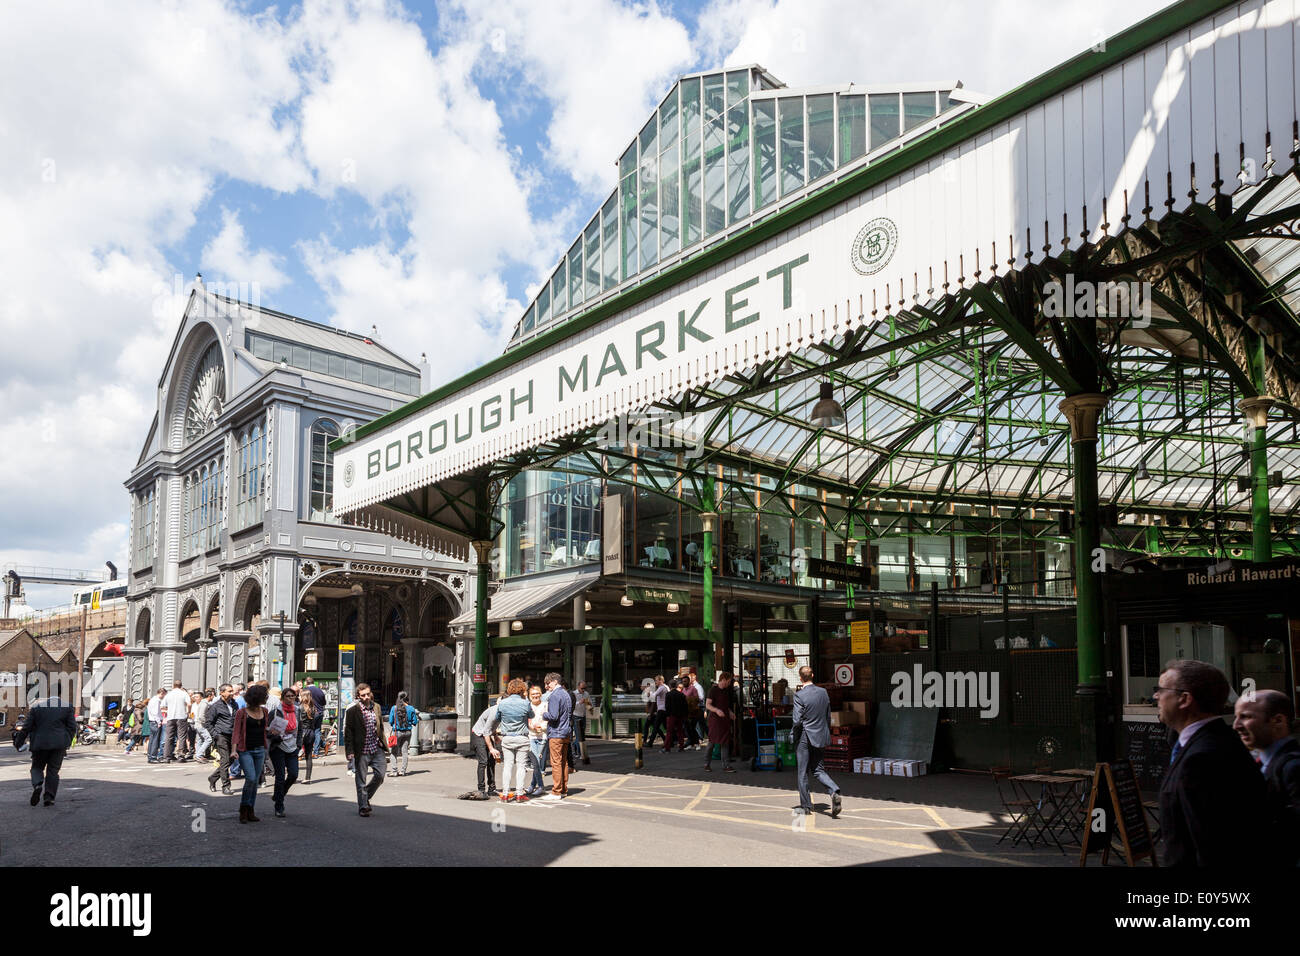 Entrance to Borough Market, near London Bridge. - Stock Image